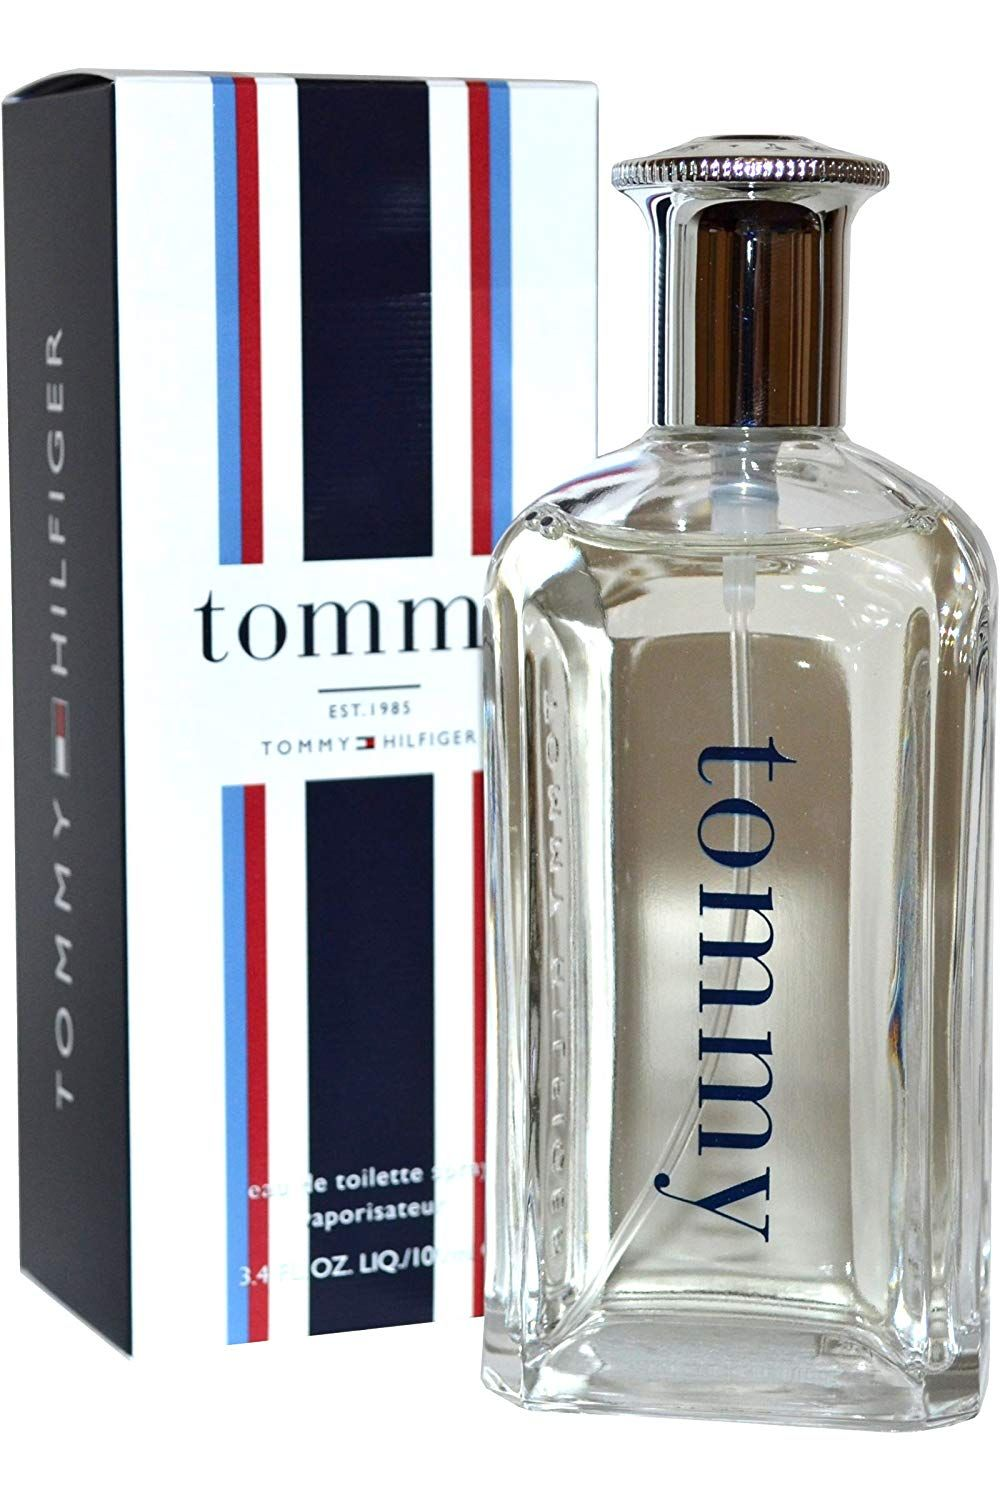 a379b91f Tommy by Tommy Hilfiger for Men – 3.4 oz EDT Spray in 2019 | My ...